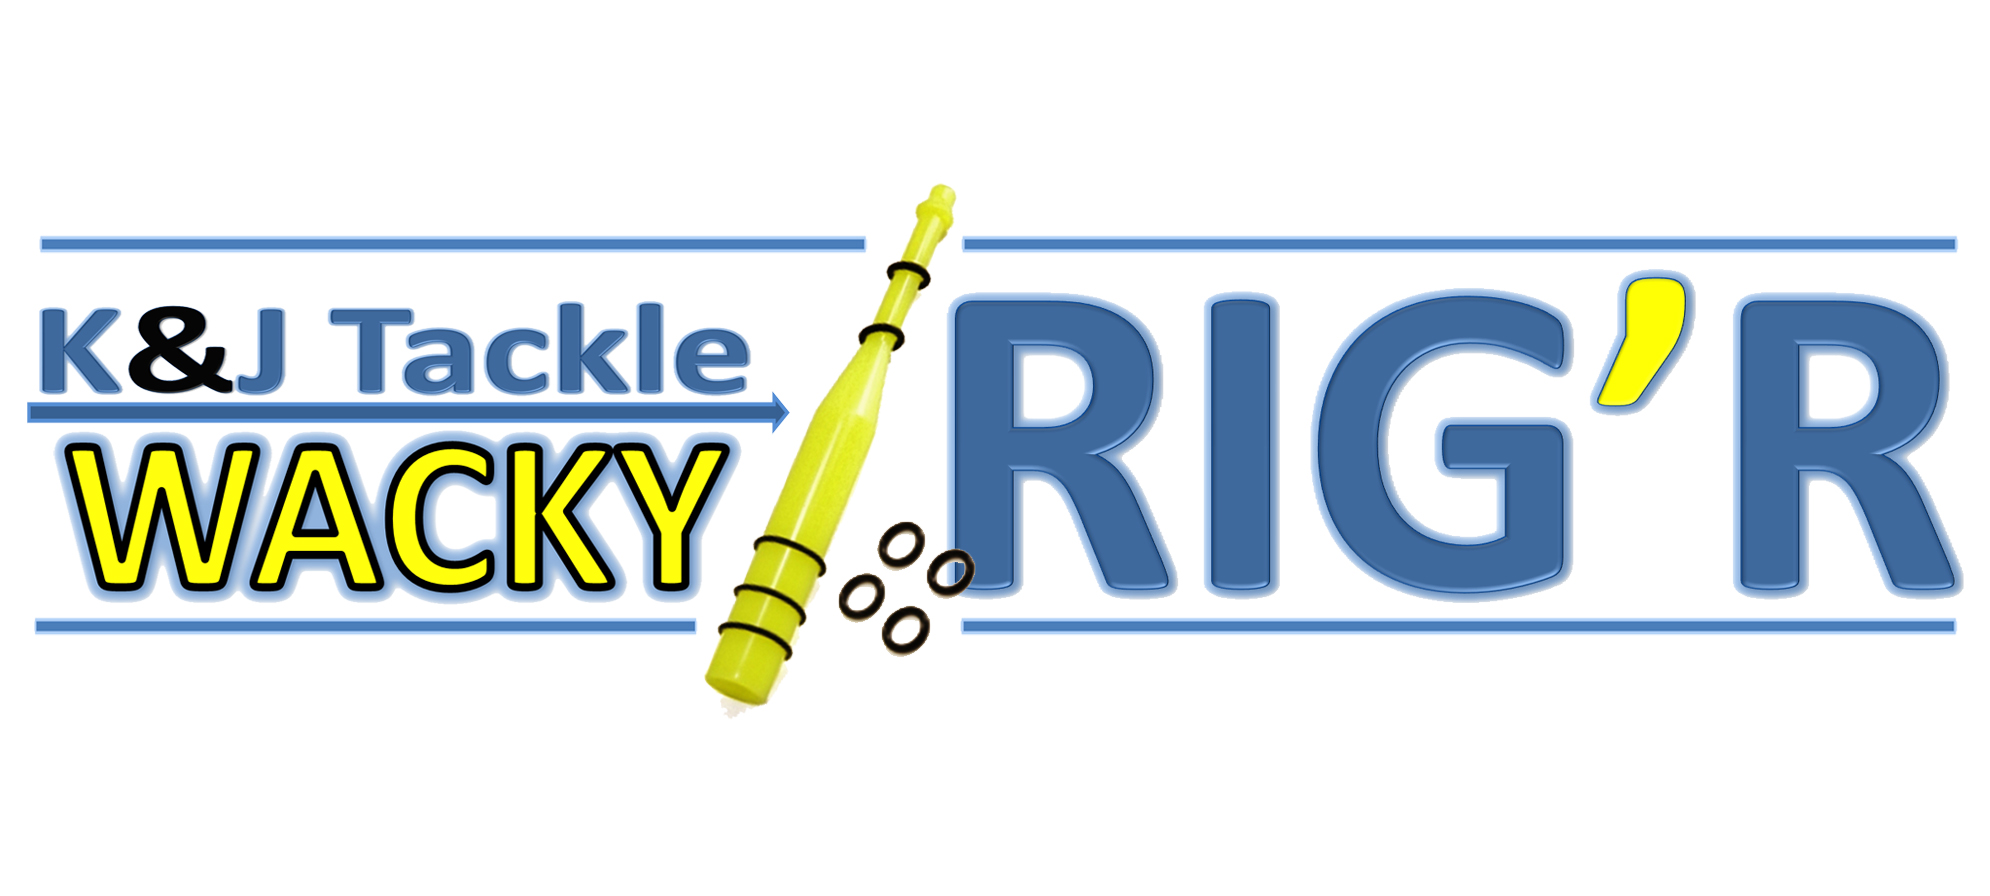 tackle wacky worm tool rigged senko O rings